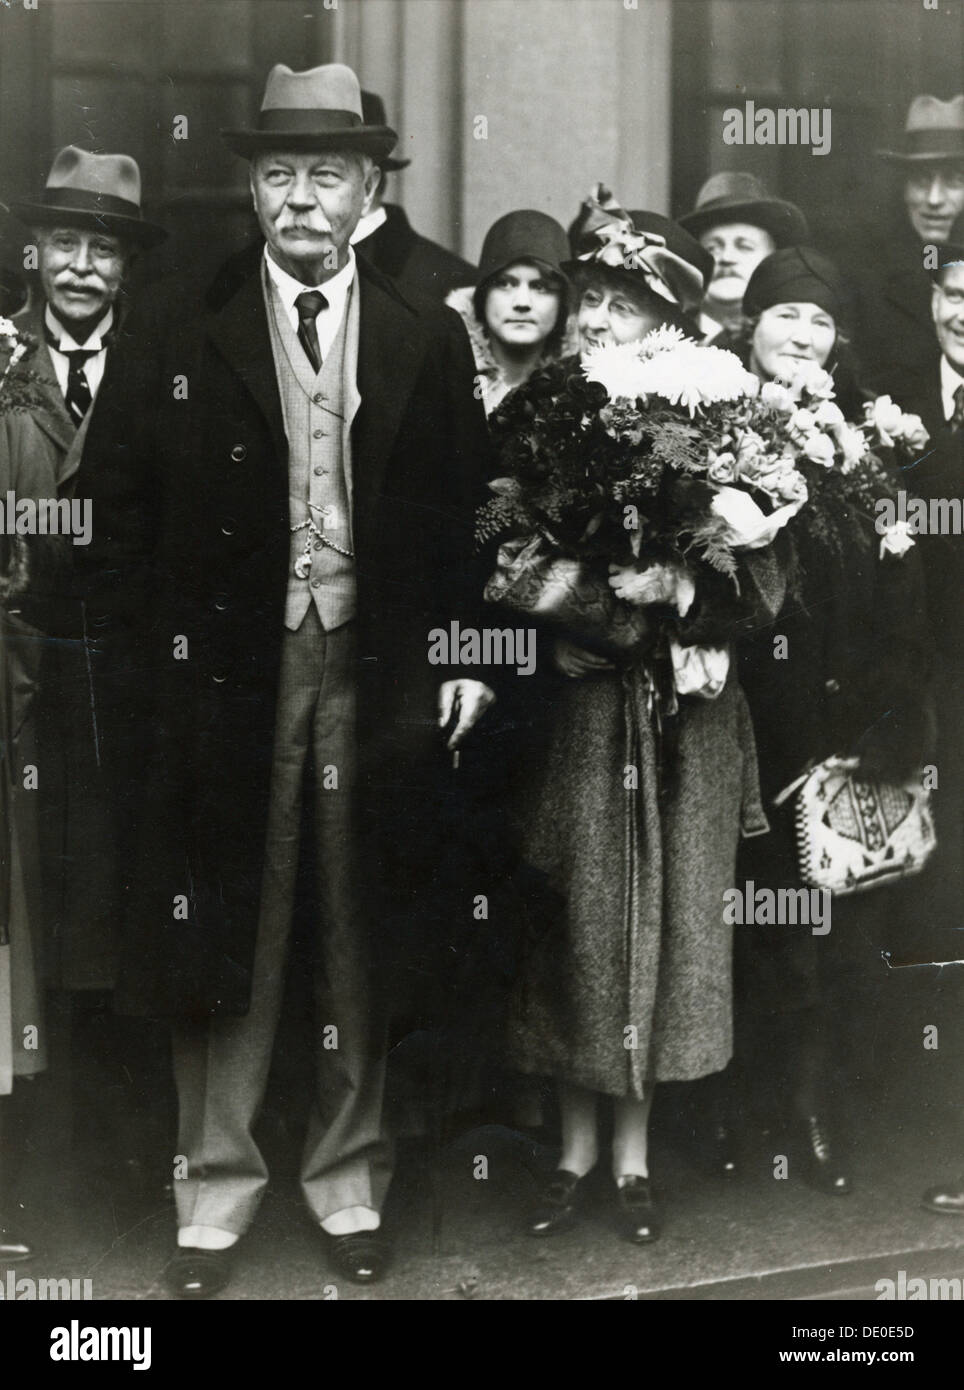 Scottish novelist Sir Arthur Conan Doyle and his wife, Stockholm, Sweden, 1929. Conan Doyle (1859-1930) was the creator of Sherlock Holmes, Professor Challenger and Brigadier Gerard. He married Jean Elizabeth Leckie, his second wife, in 1907. - Stock Image